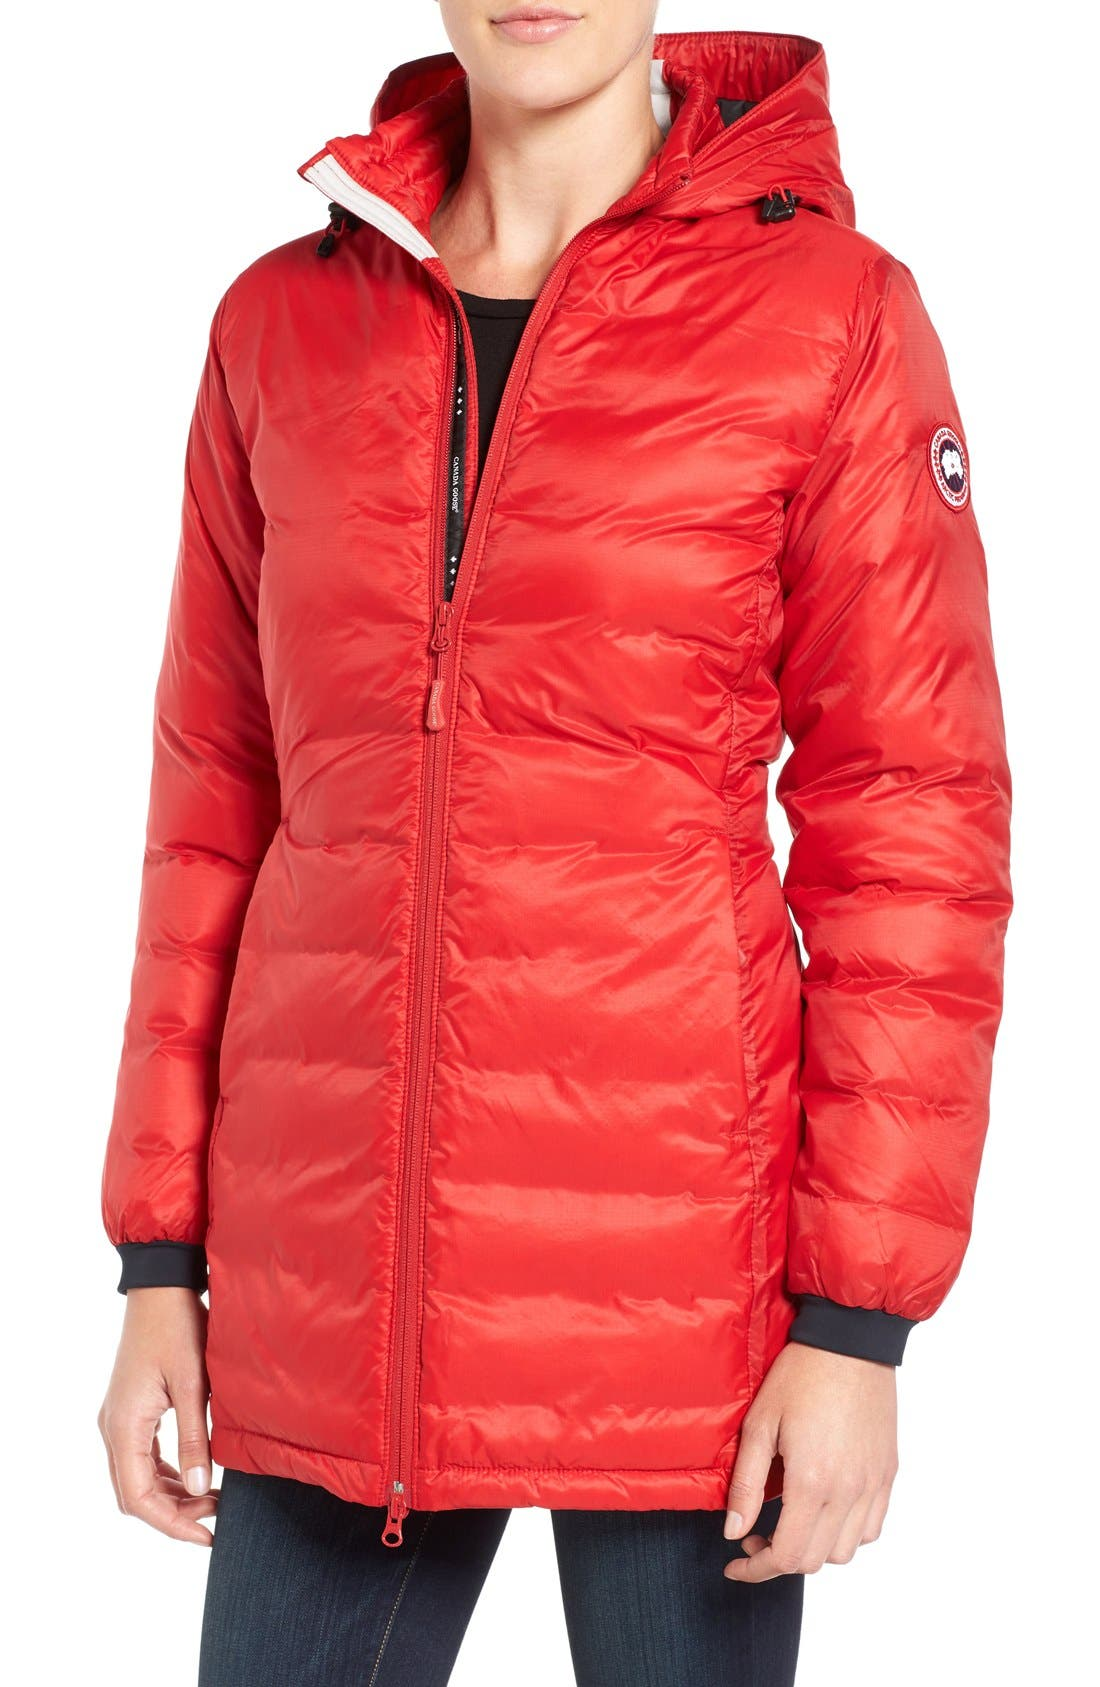 Alternate Image 1 Selected - Canada Goose 'Camp' Slim Fit Hooded Packable Down Jacket